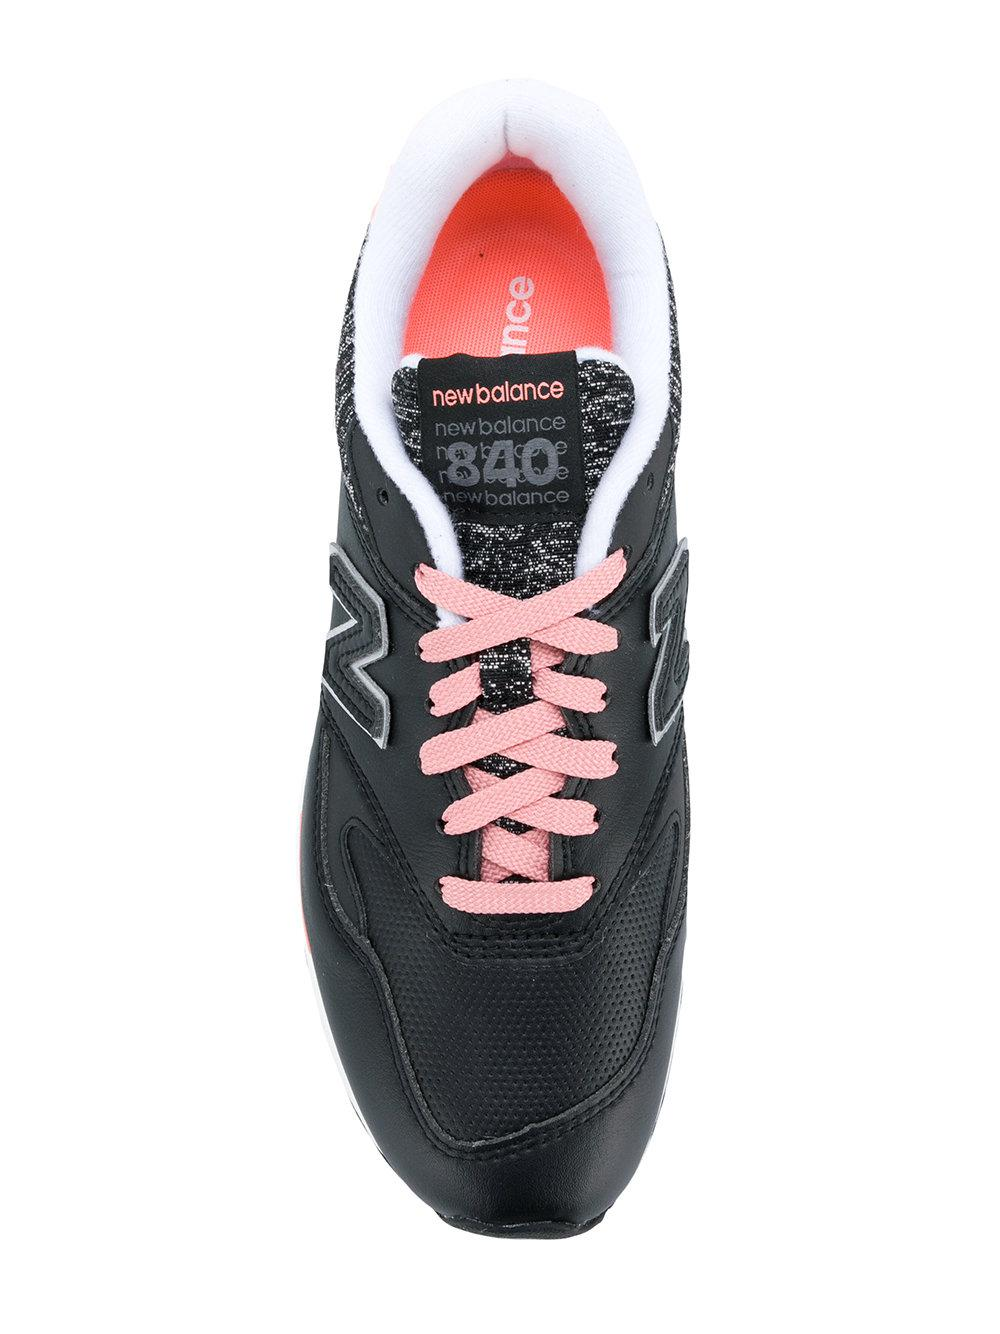 Cheap New Arrival Outlet Shop For New Balance 840 Fluo Detail sneakers Limit Offer Cheap 100% Guaranteed Cheap Price Sale Online LLnvYNNbJ